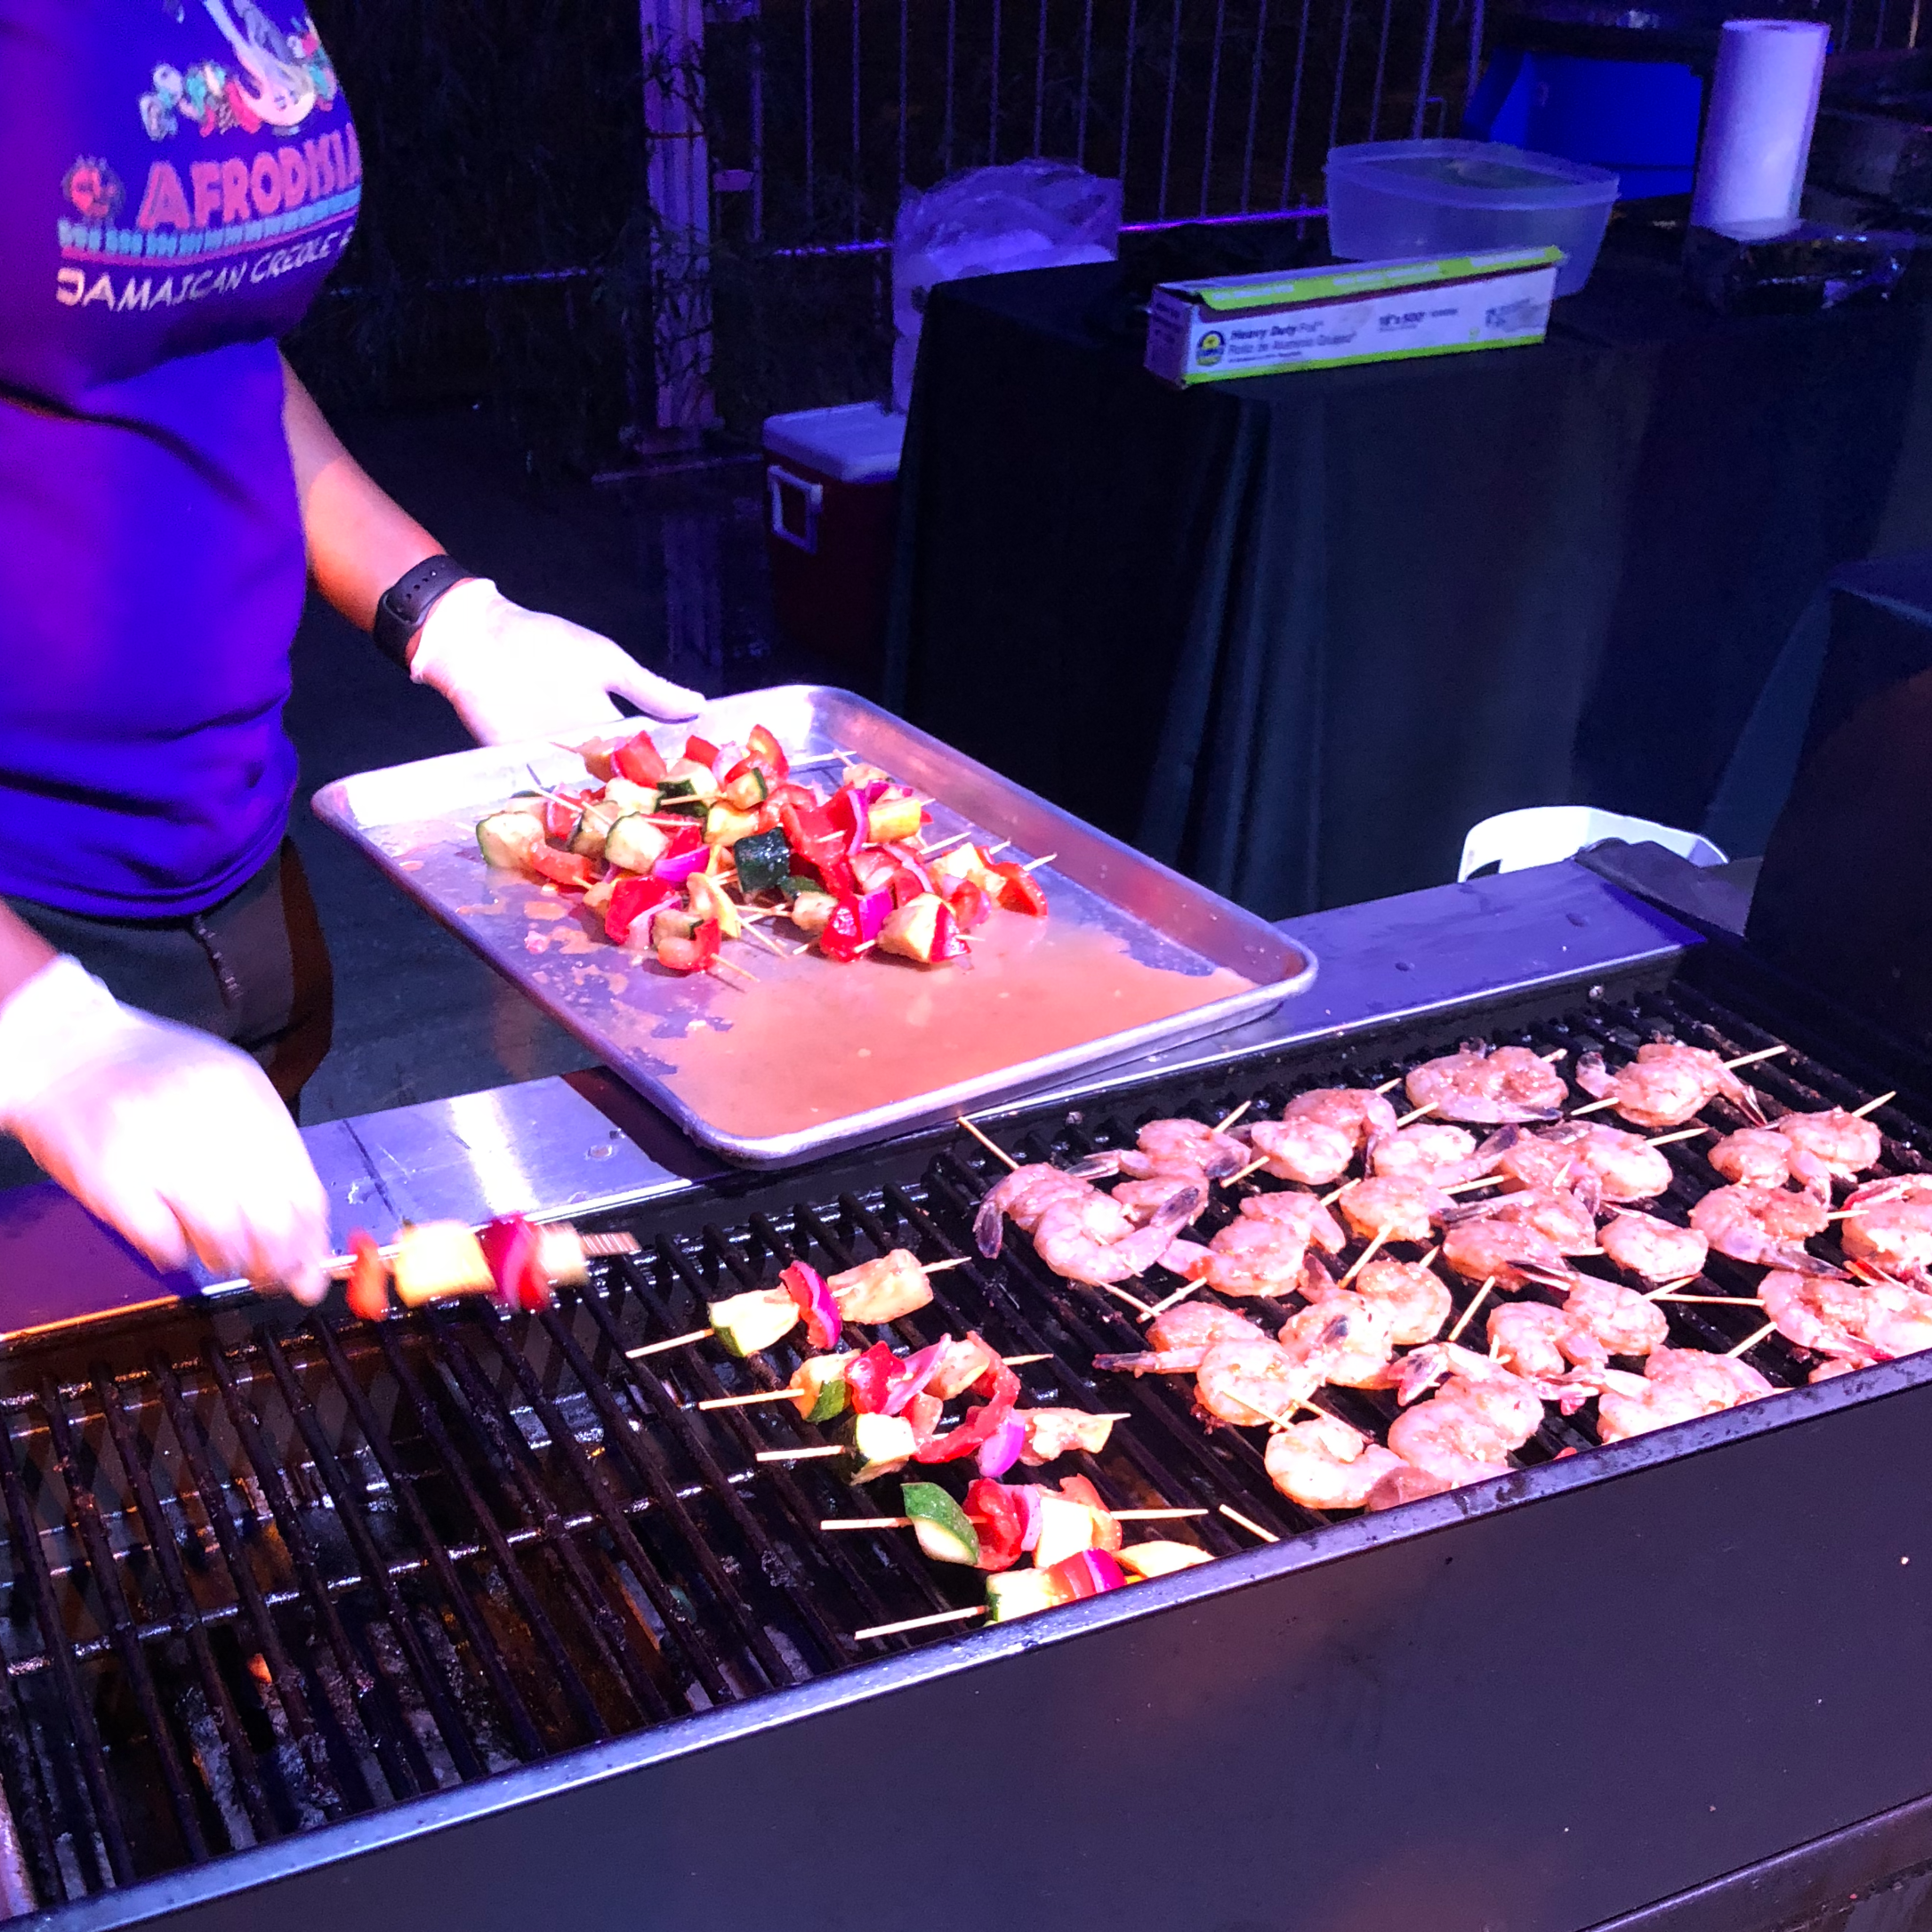 Shaka of Afrodisiac placing skewers on the grill